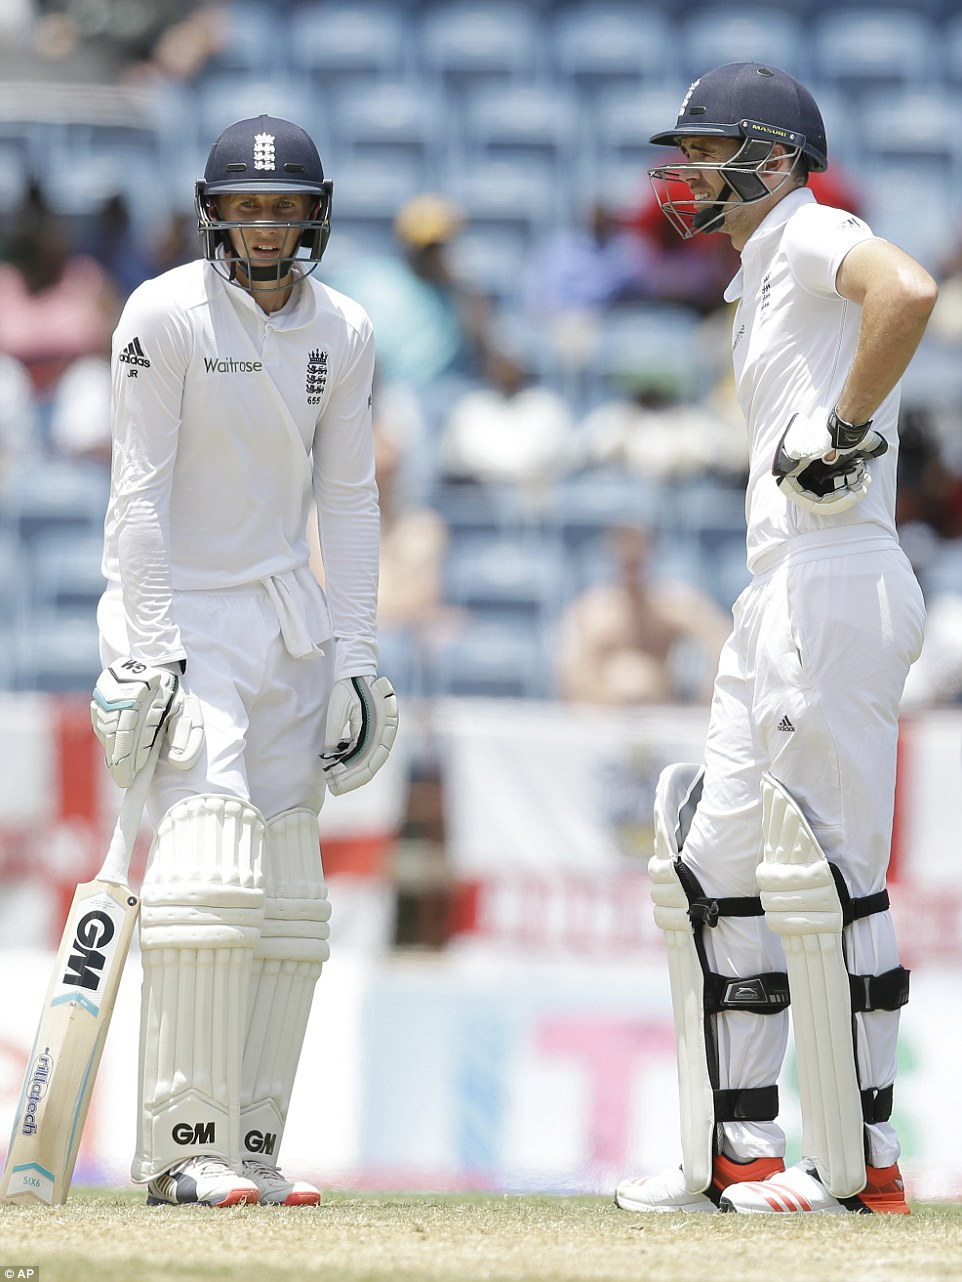 Before his error, Anderson had played his part as a No 11 with intelligence, supporting Root sensibly and keeping off strike